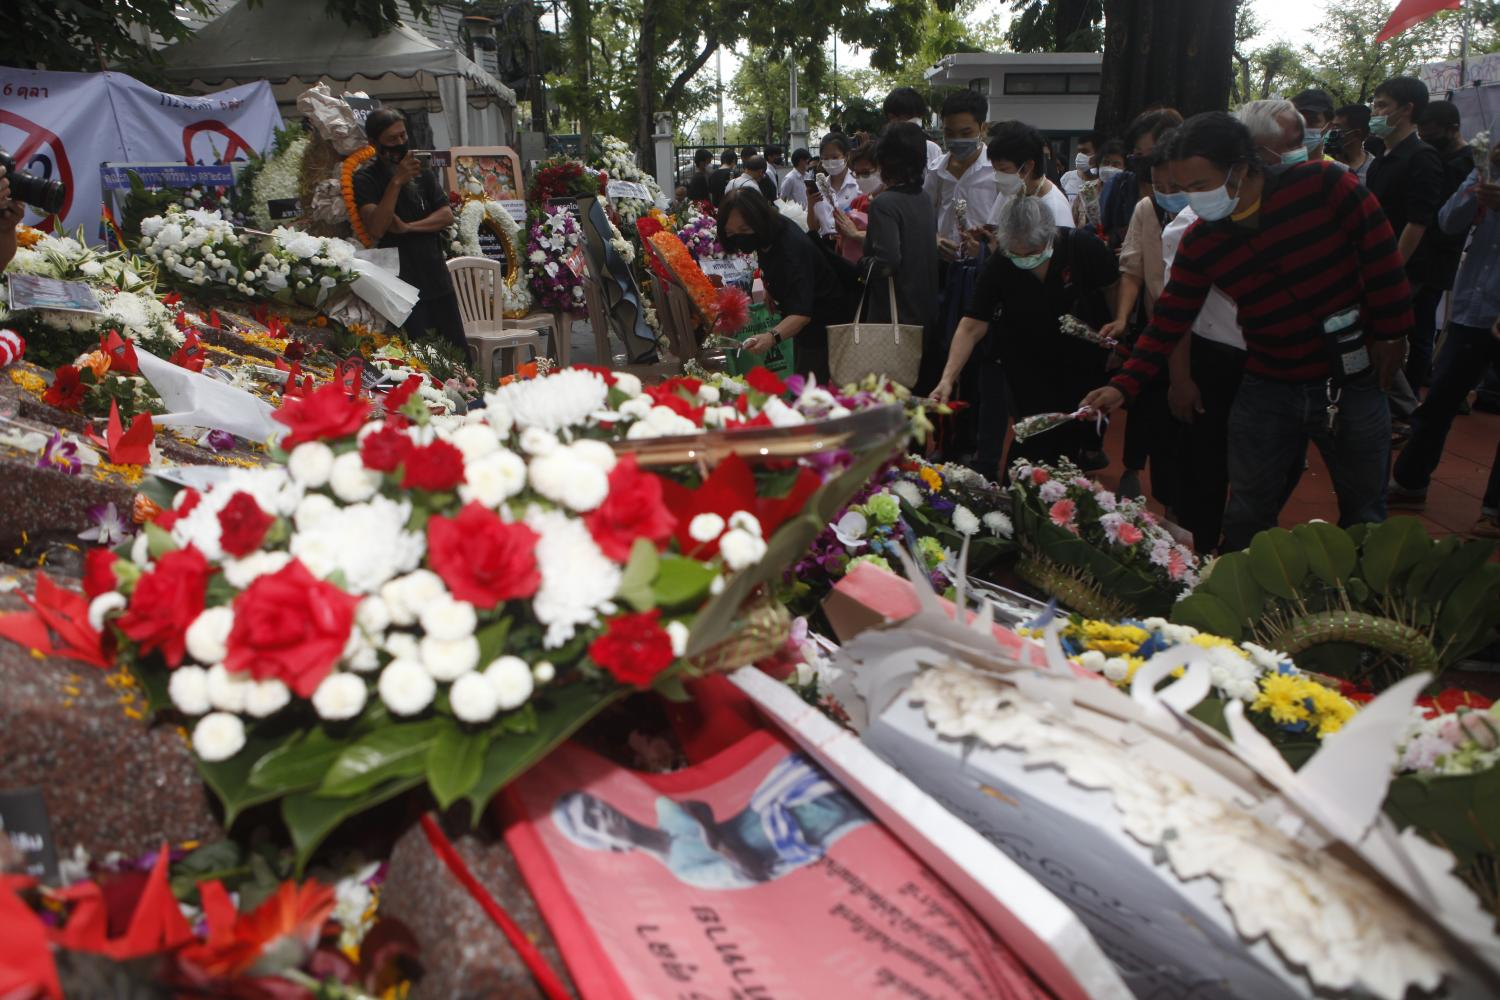 People lay wreaths and flowers in remembrance of the Oct 6, 1976 massacre, during the memorial gathering at Thammasat University, Tha Prachan campus, on Wednesday. (Photo: Nutthawat Wicheanbut)